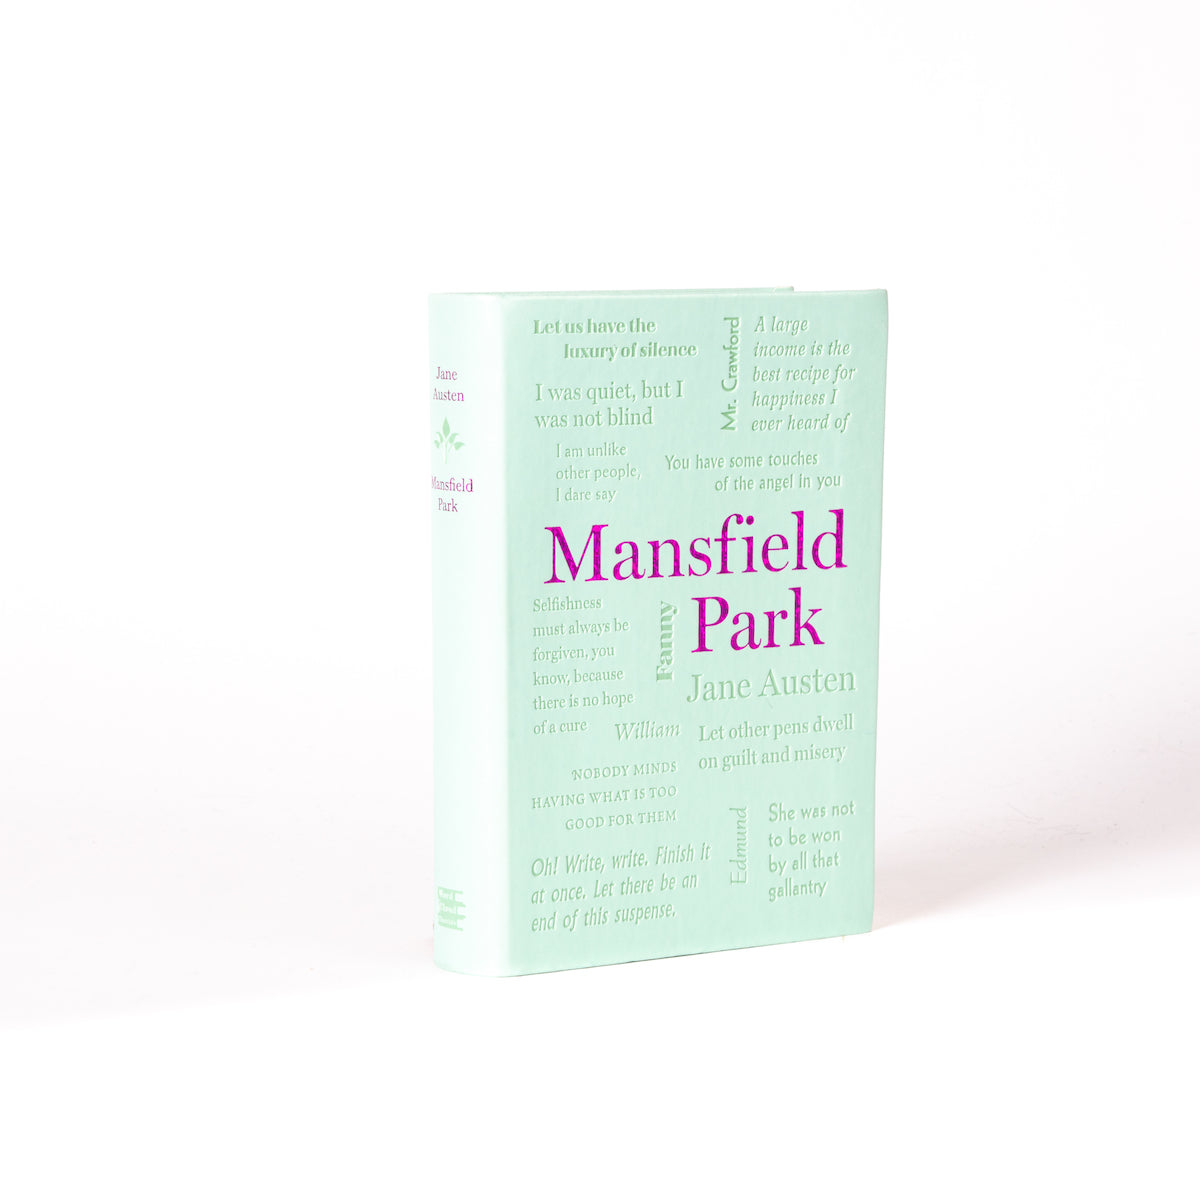 Mansfield Park/Great Ex. by Jane Austen